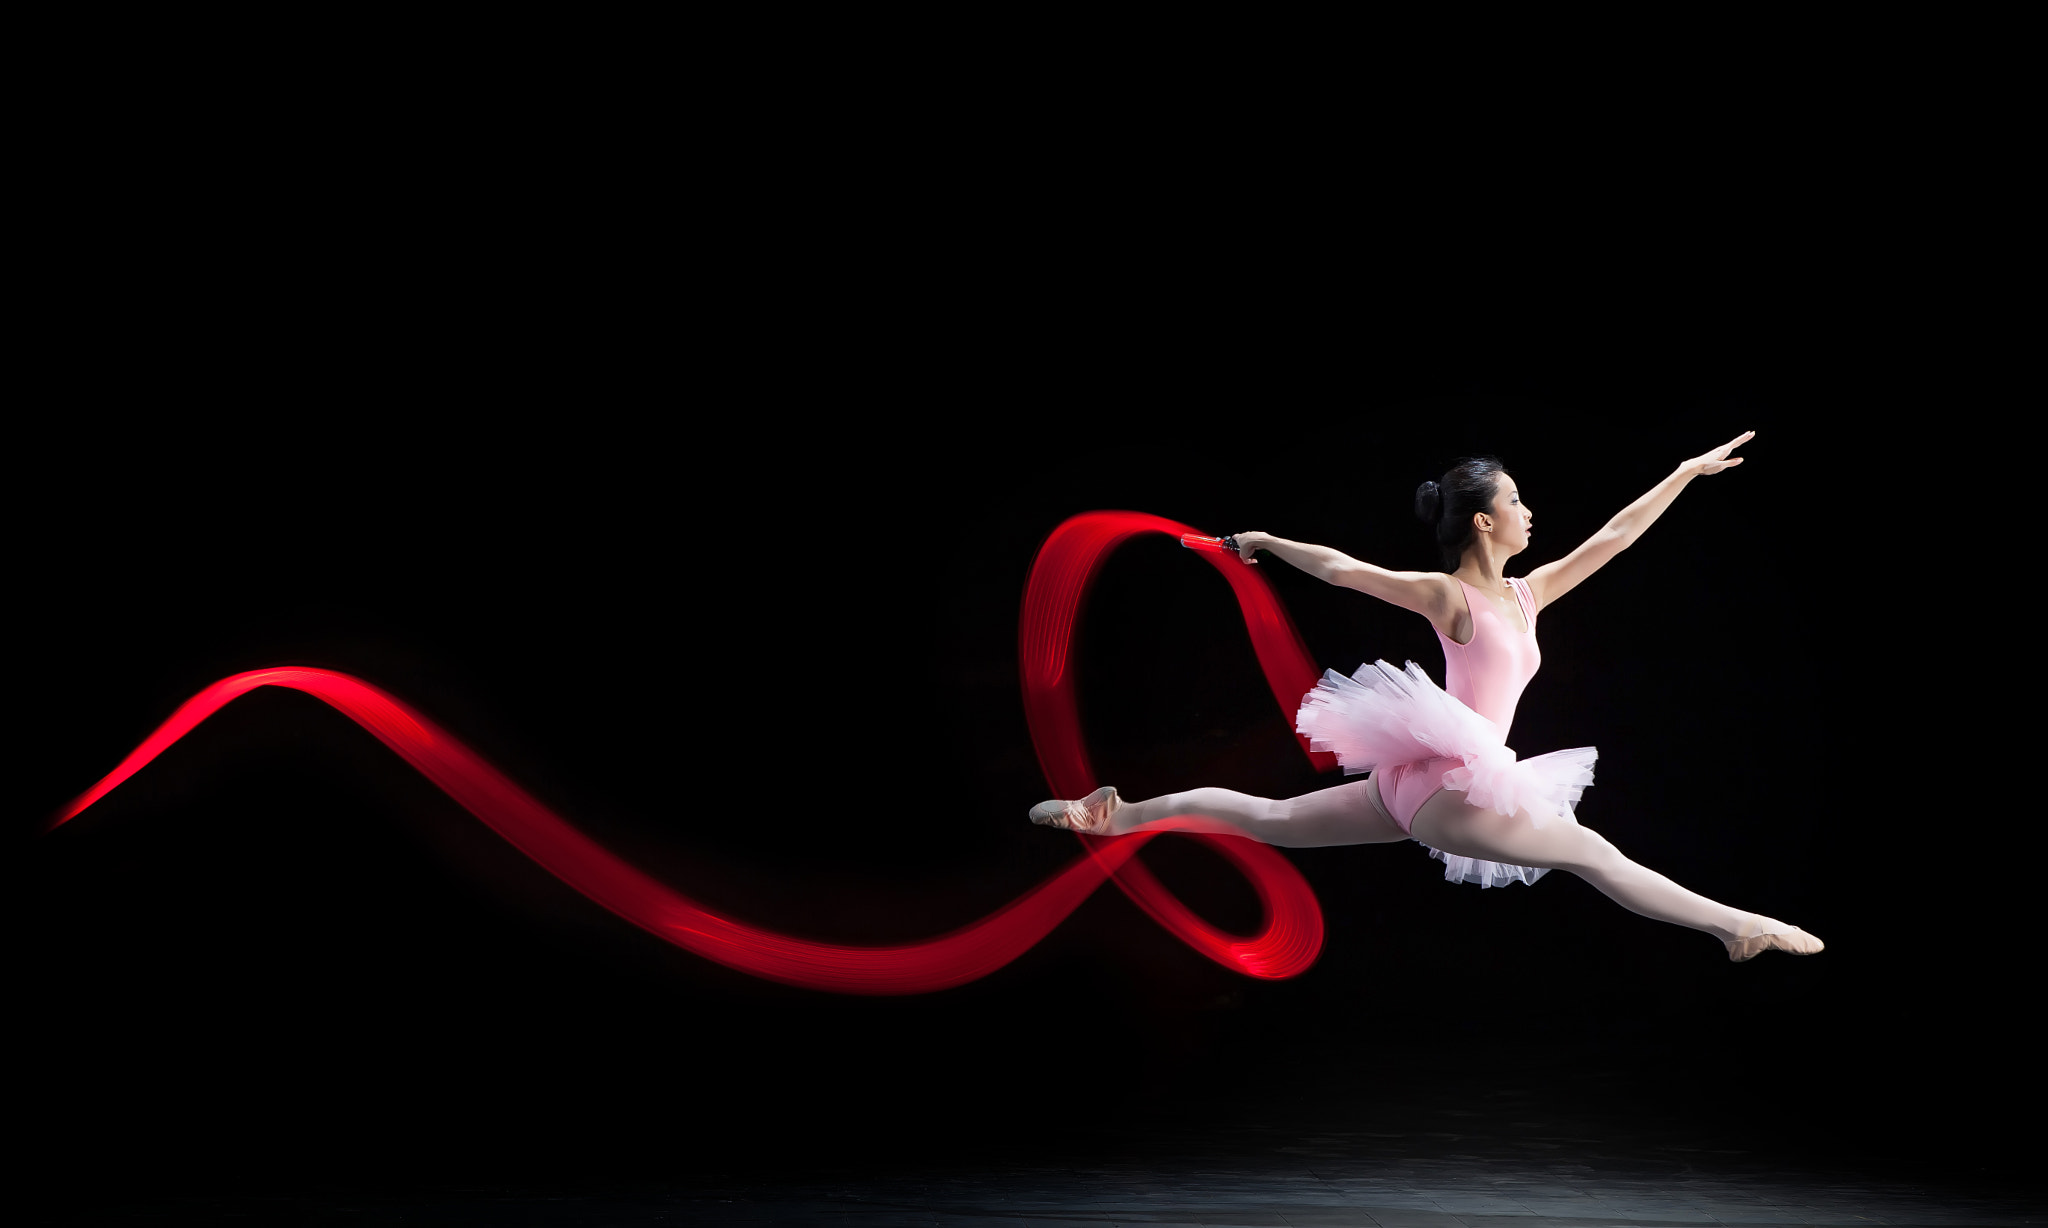 Photograph Ballerina v.2 by tio ping on 500px